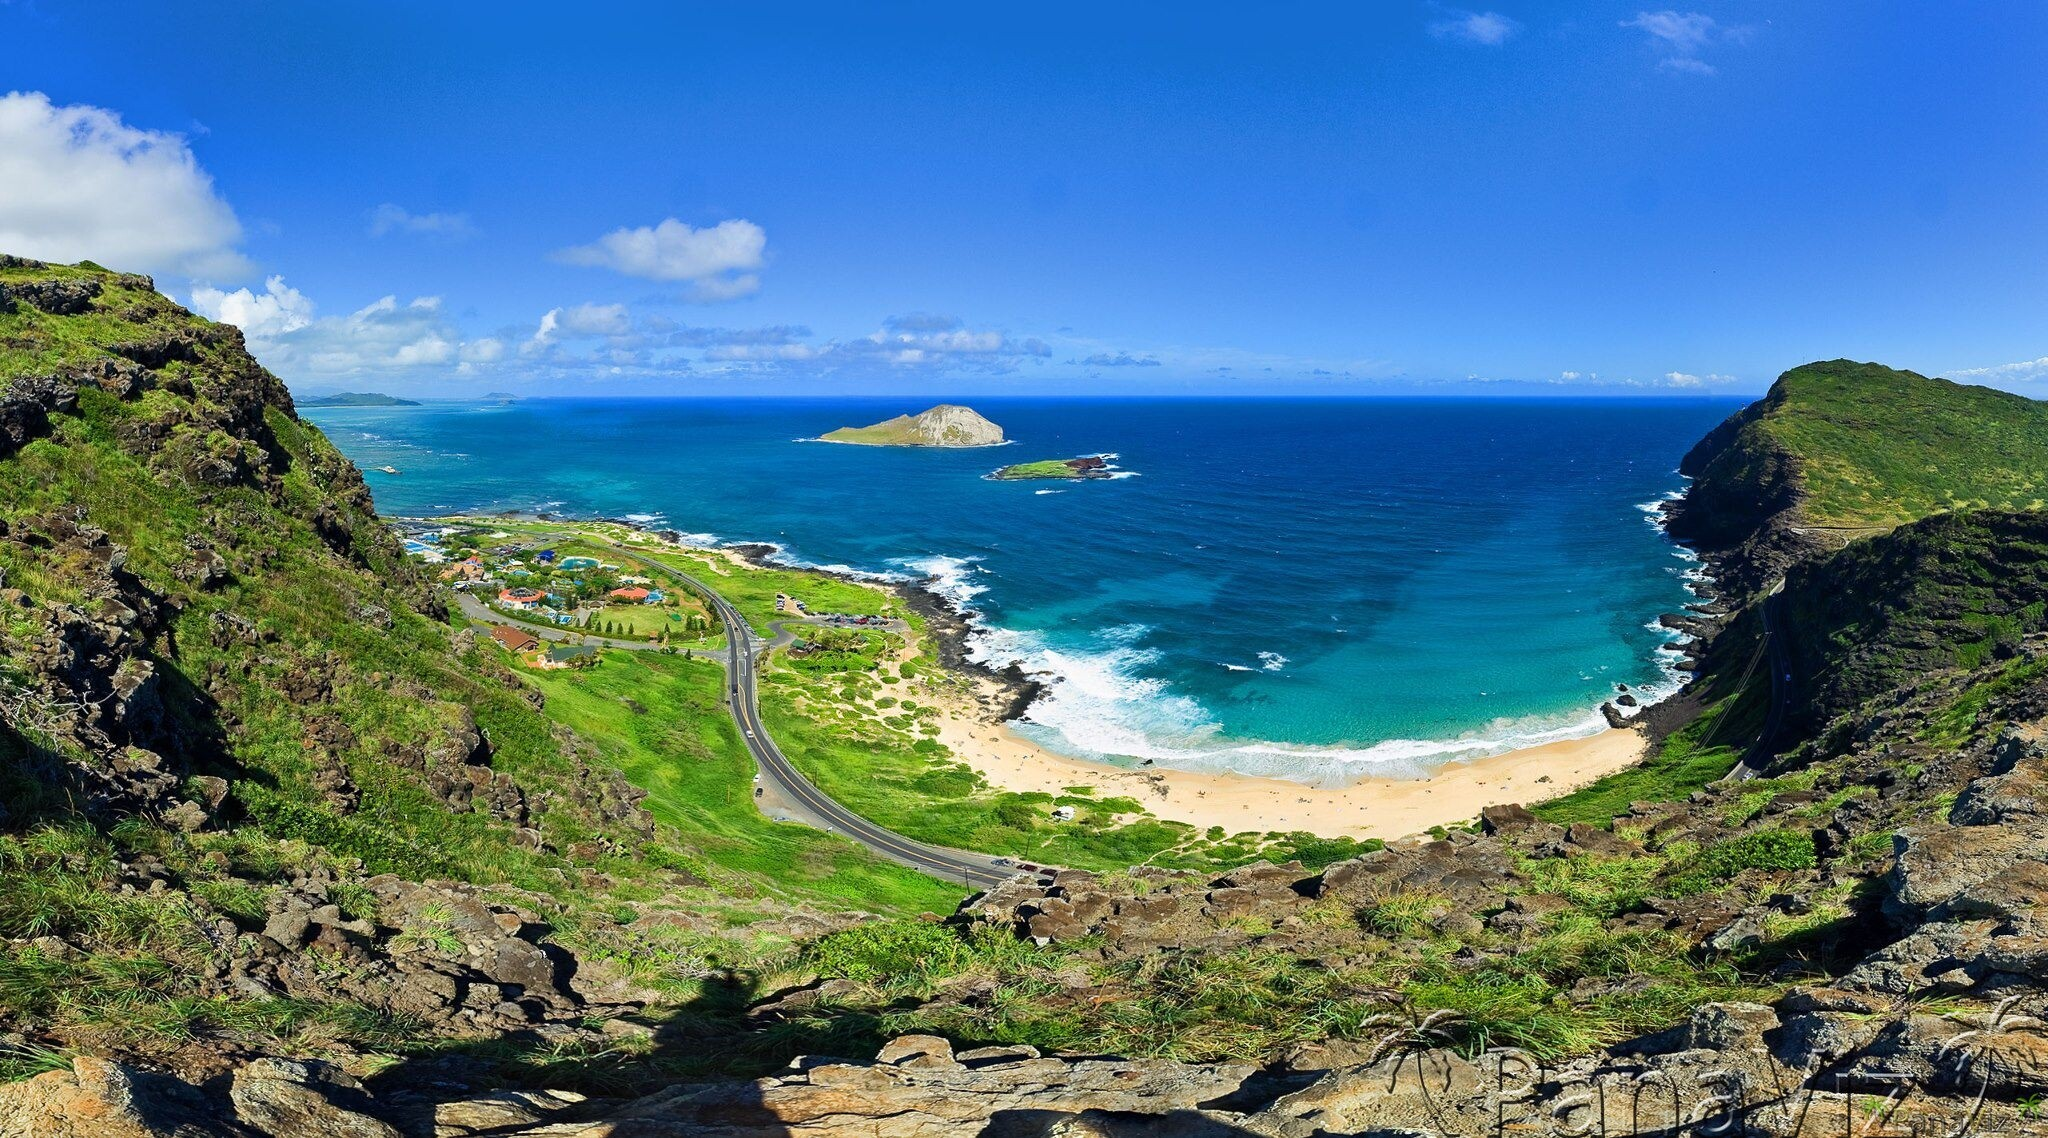 Makapuu Beach & Sea Life Park.